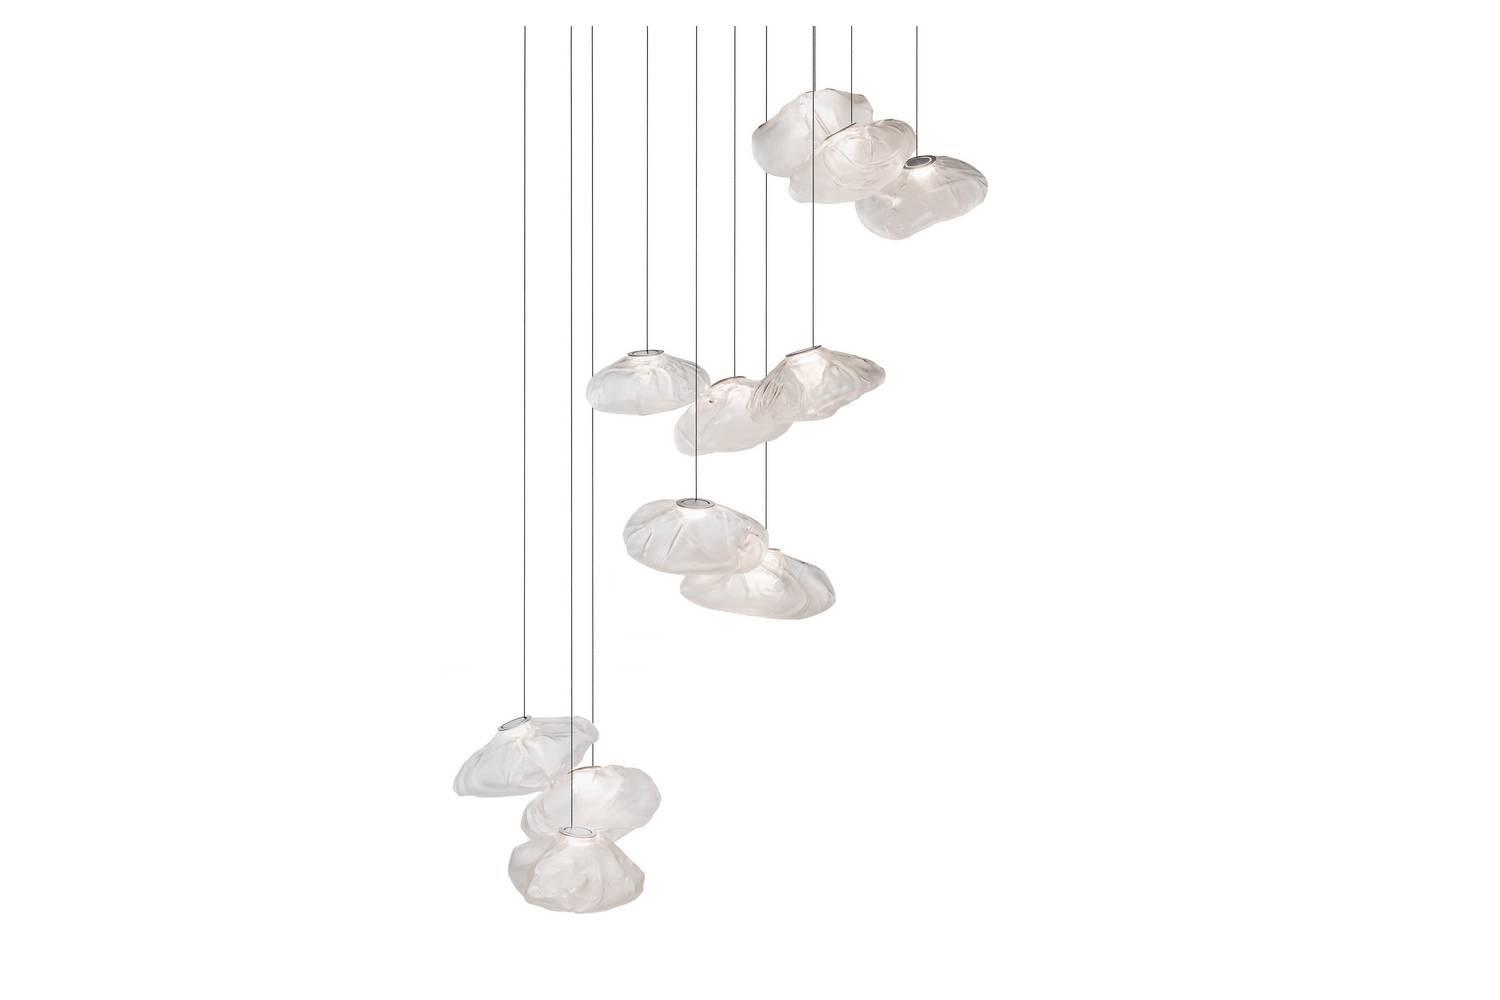 73.11 Suspension Lamp by Omer Arbel for Bocci